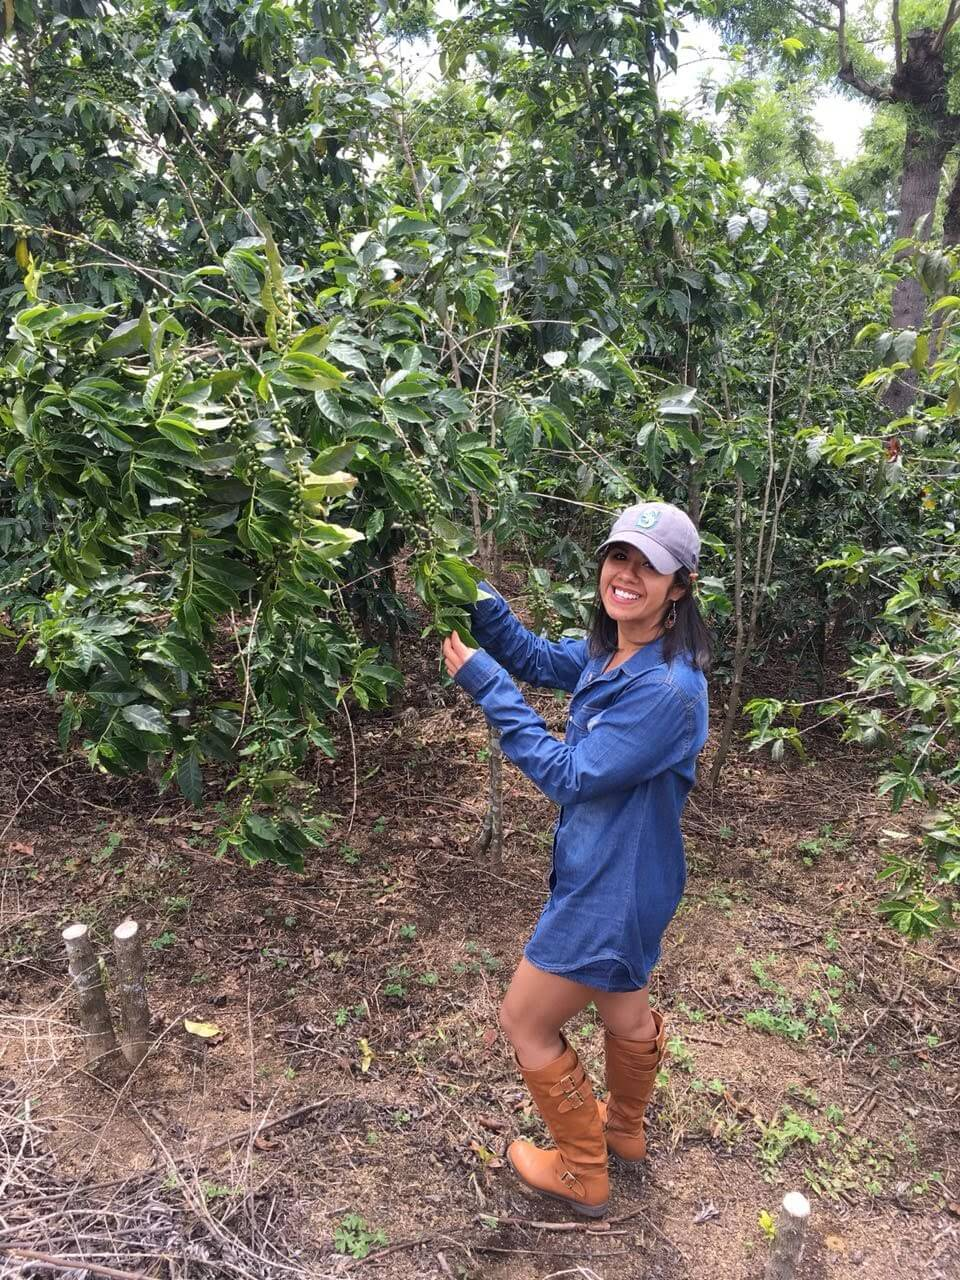 Melanie Herrera - Melanie discovered the agricultural world at ENCA (National Agricultural School), which guided her to Zamorano University, and then to the beautiful world of coffee. She started working at Bella Vista mill in Guatemala in 2012 (where she currently works). There she has learned from production to marketing coffee. In this path she has learned and continues to learn more each day. She currently wears many hats at Bella Vista: Sales of green coffee, Customer relationship management, small producers chain, and quality control assistant.